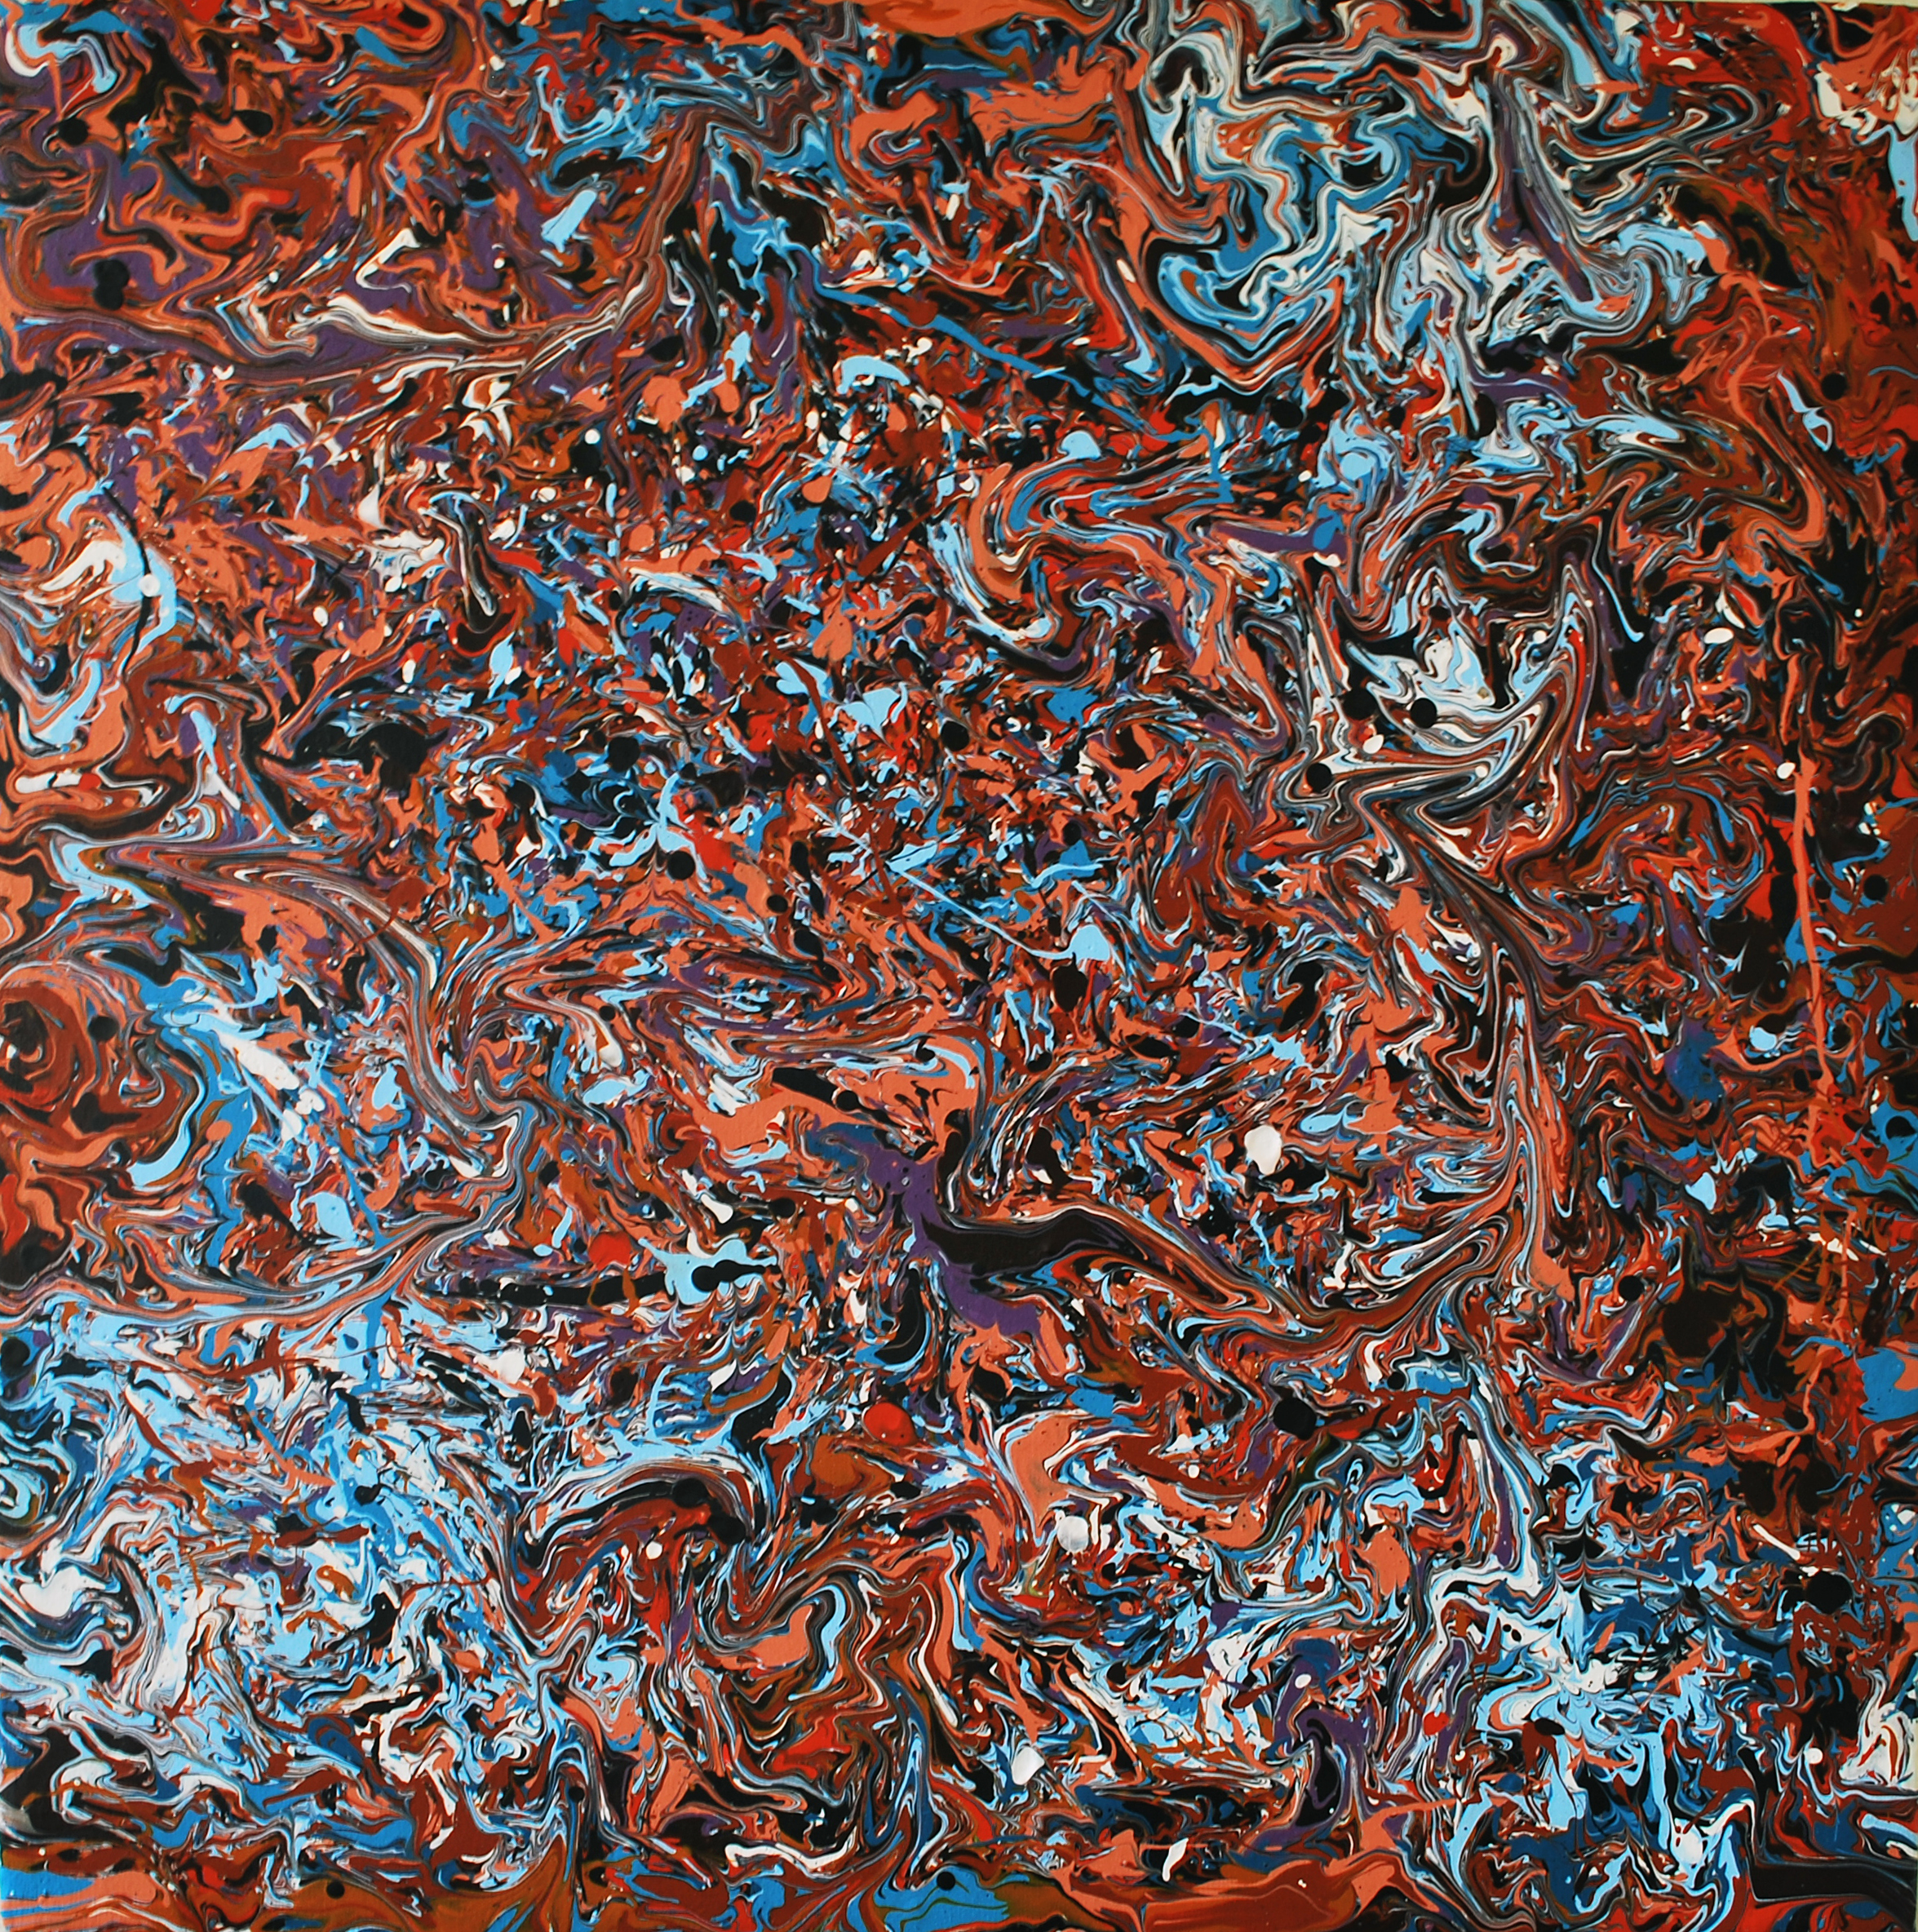 Freezing Over - Large Abstract By Phil Connor